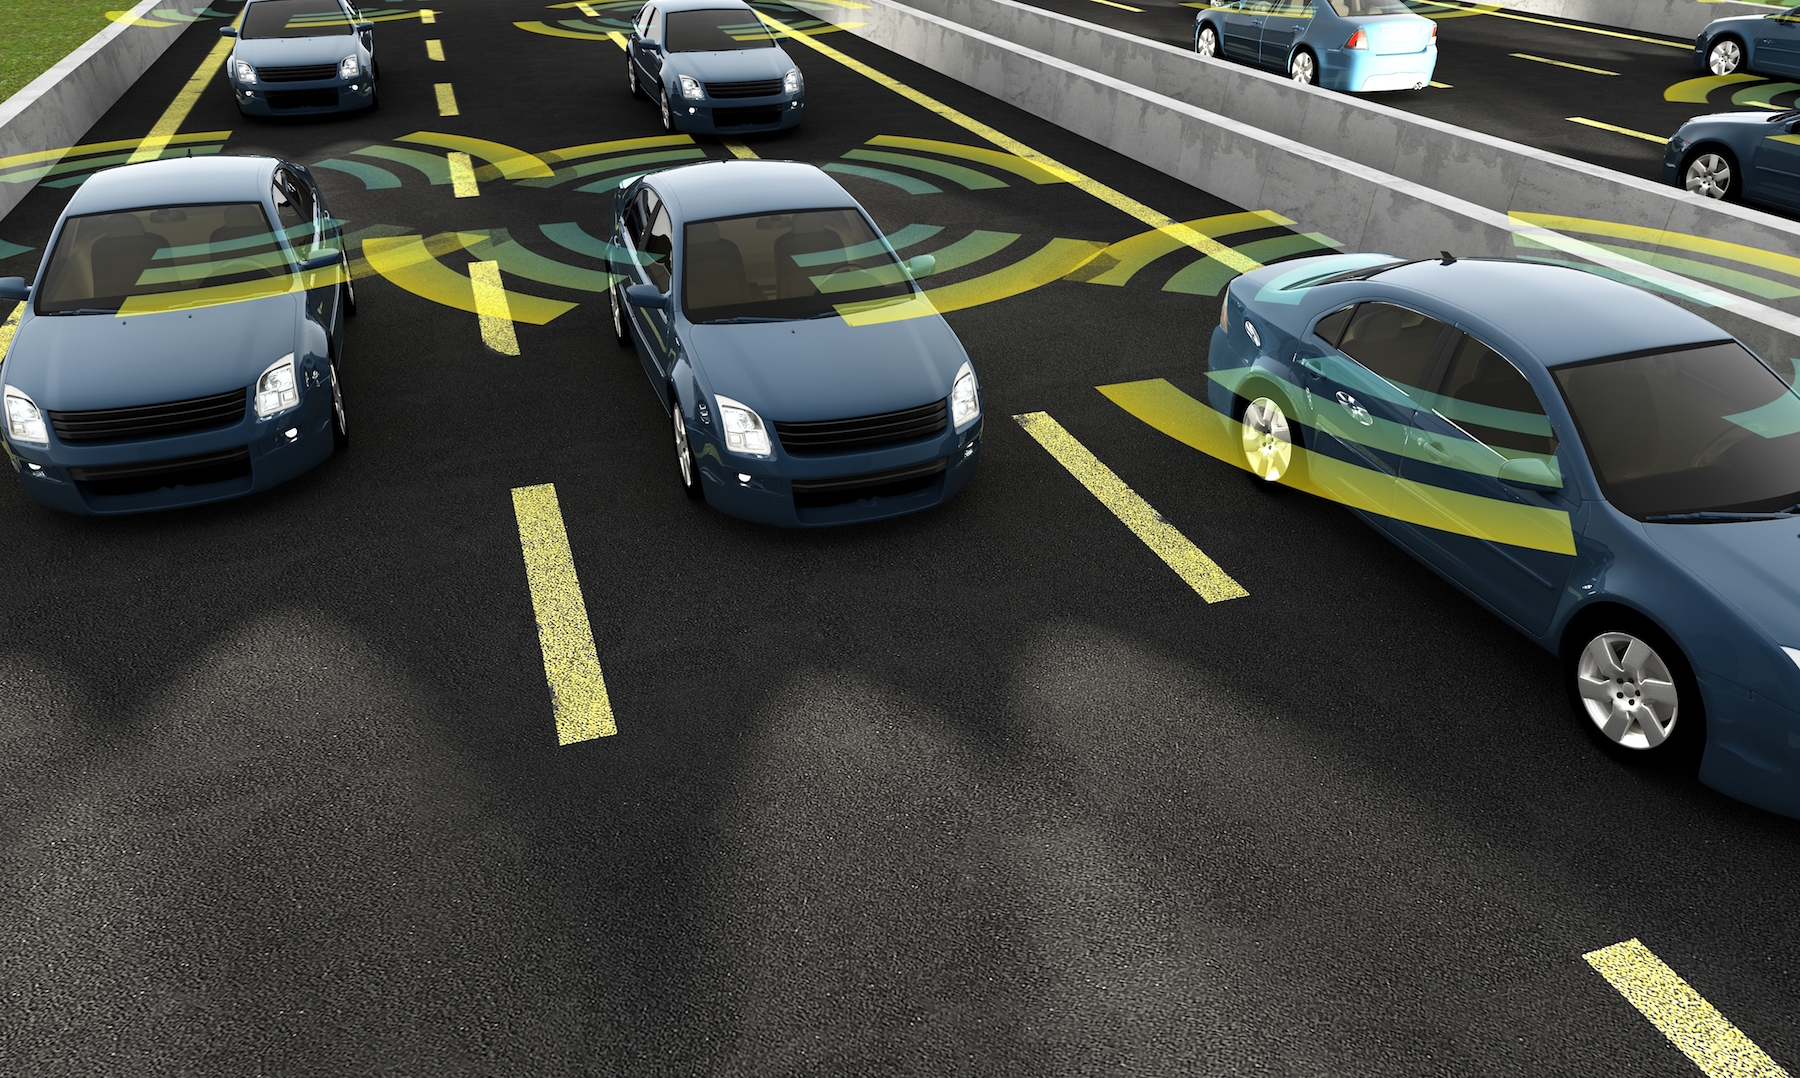 A new study has shown that the presence of autonomous vehicles can improve traffic flow and lower fuel consumption in heavy traffic.